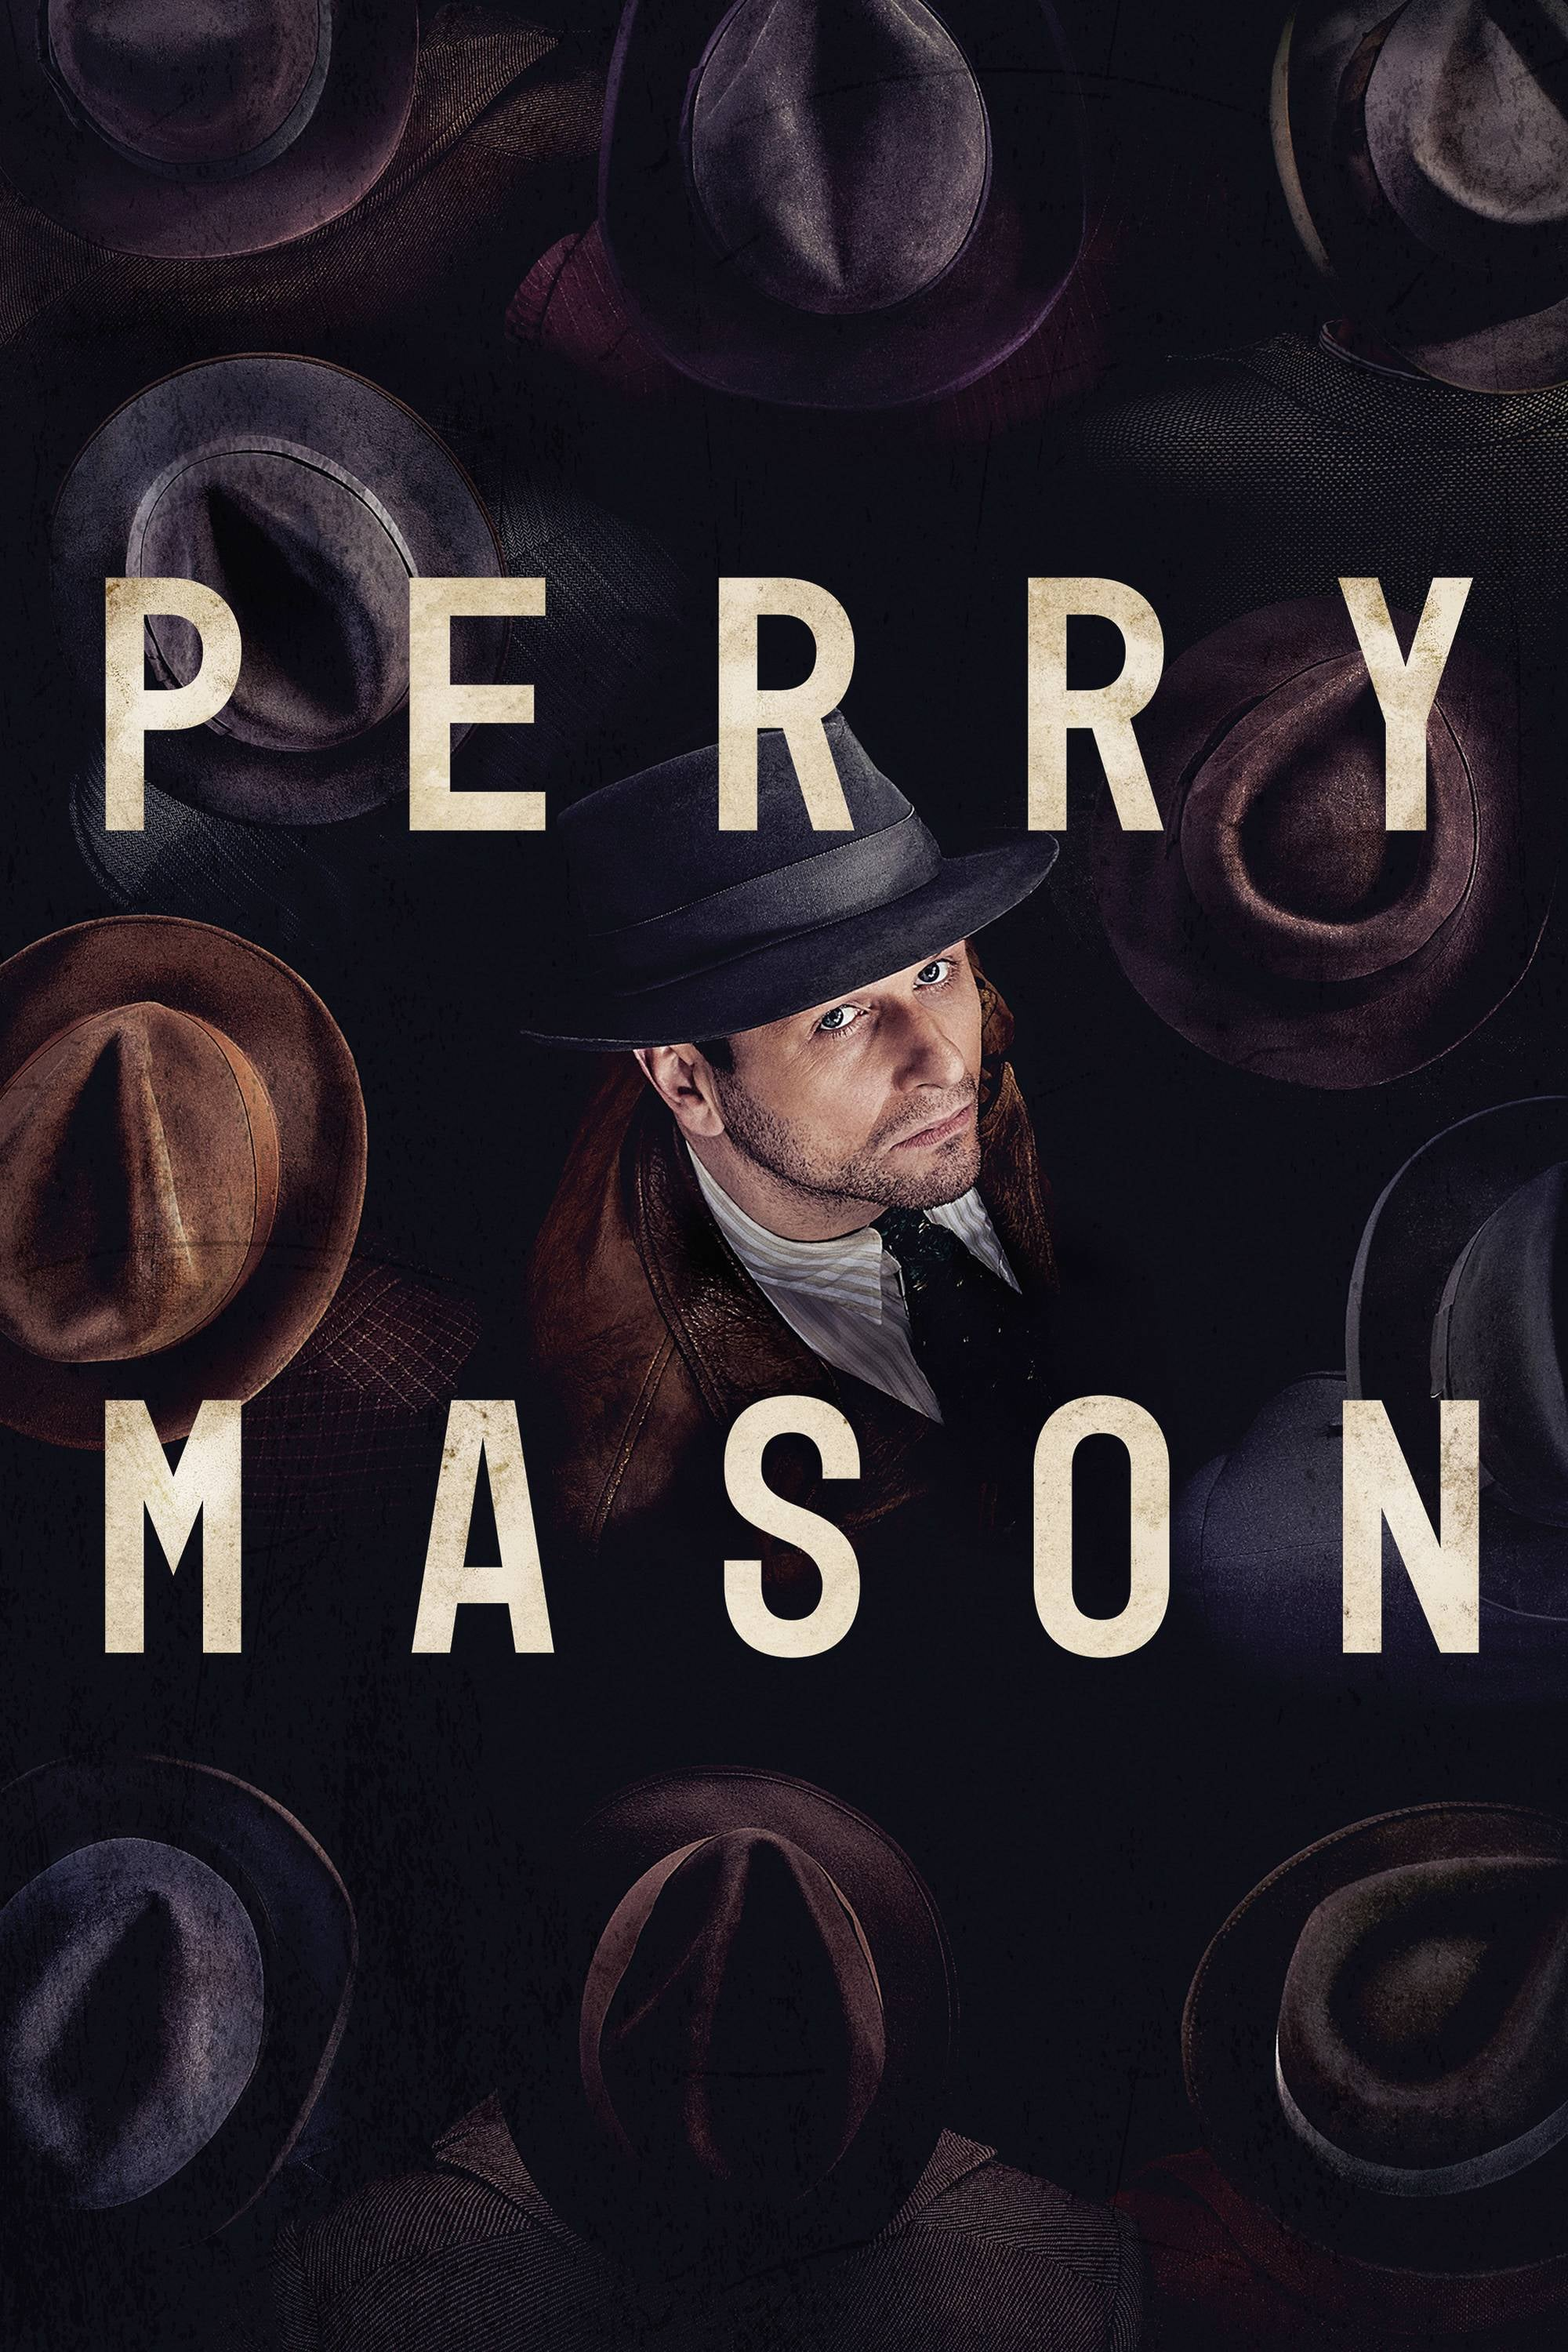 Perry Mason rating